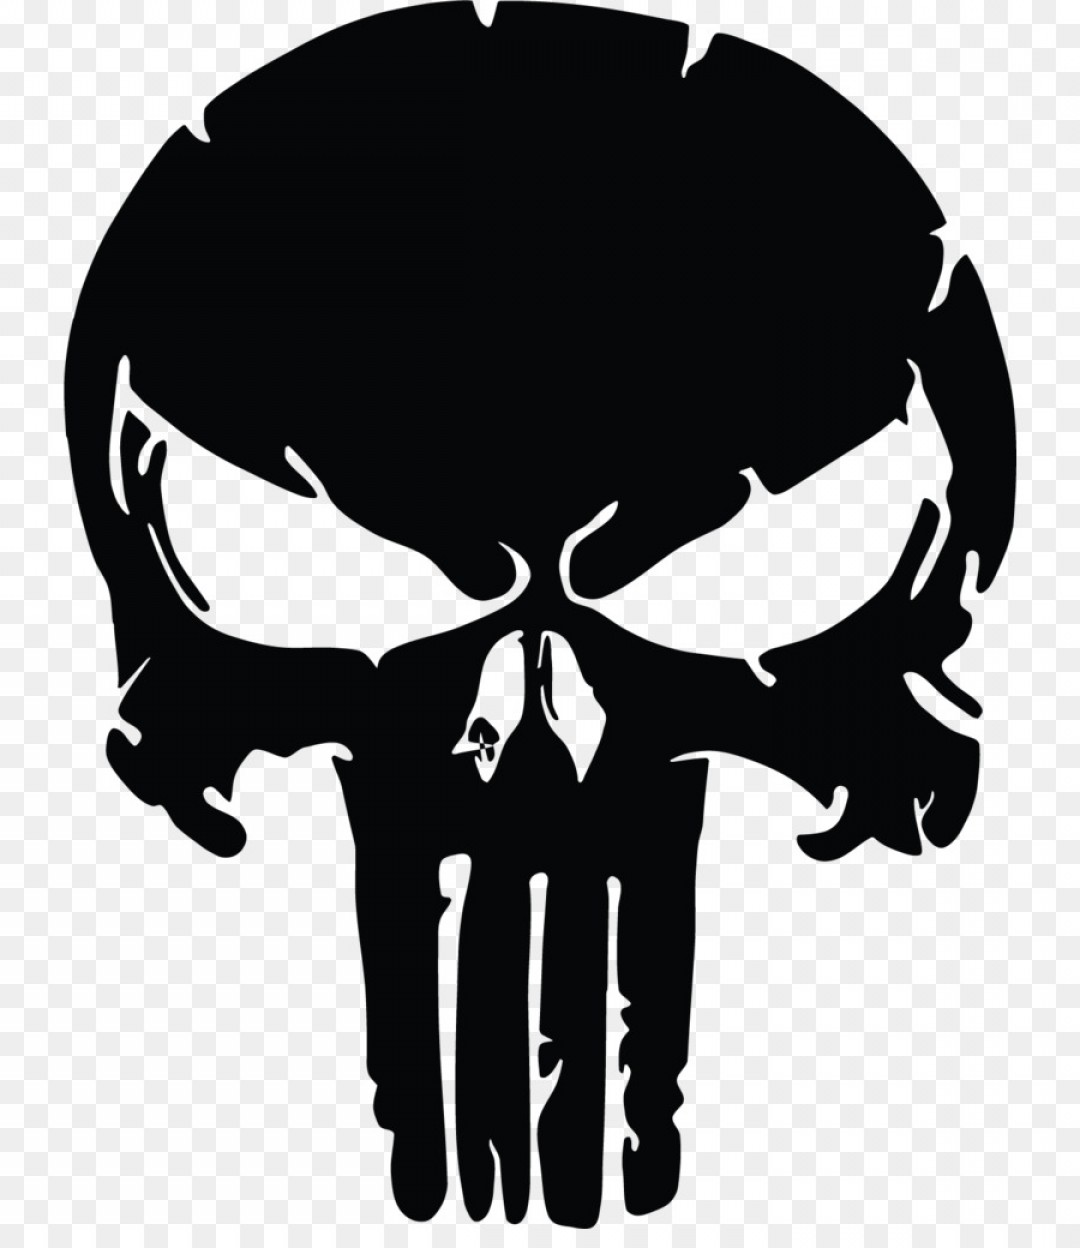 Png Punisher Vector Graphics Cdr Clip Art Autocad Dxf.